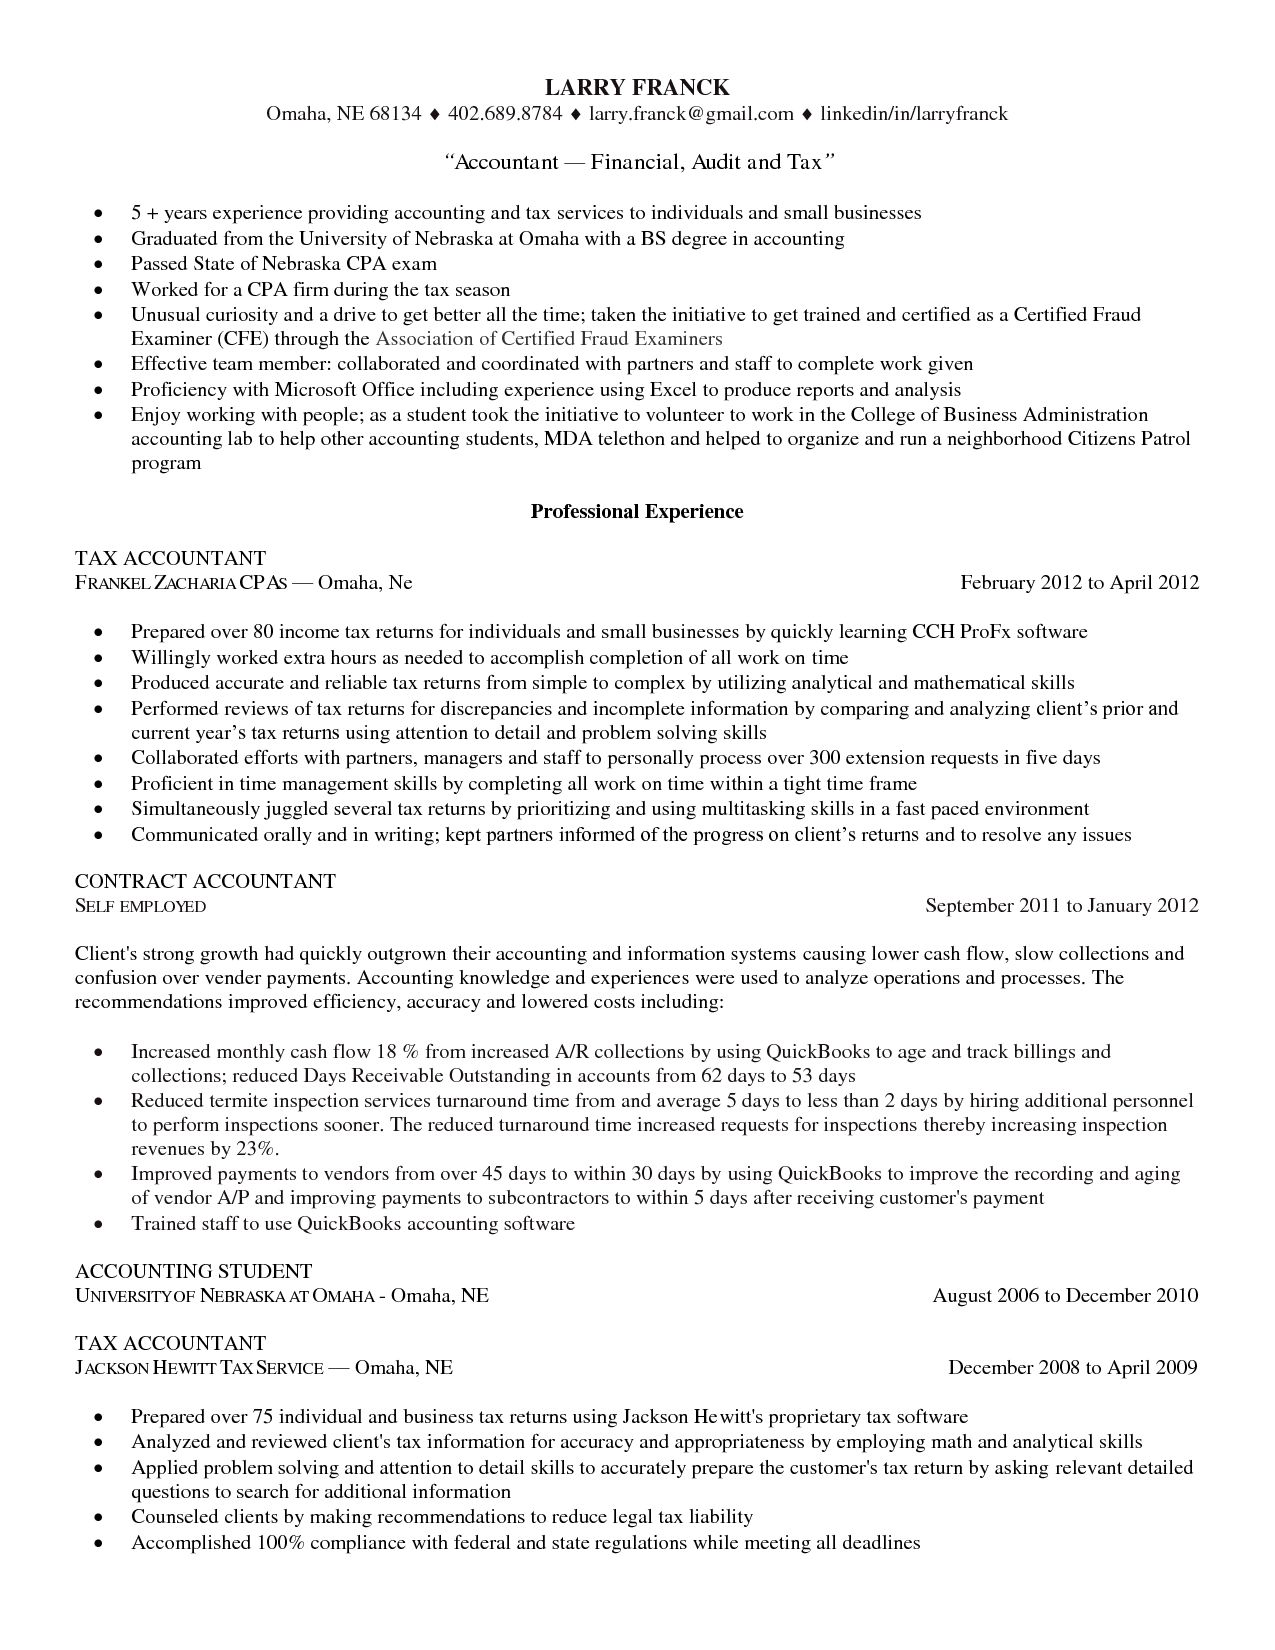 cpa board example separate entity accounting roe tax resume the